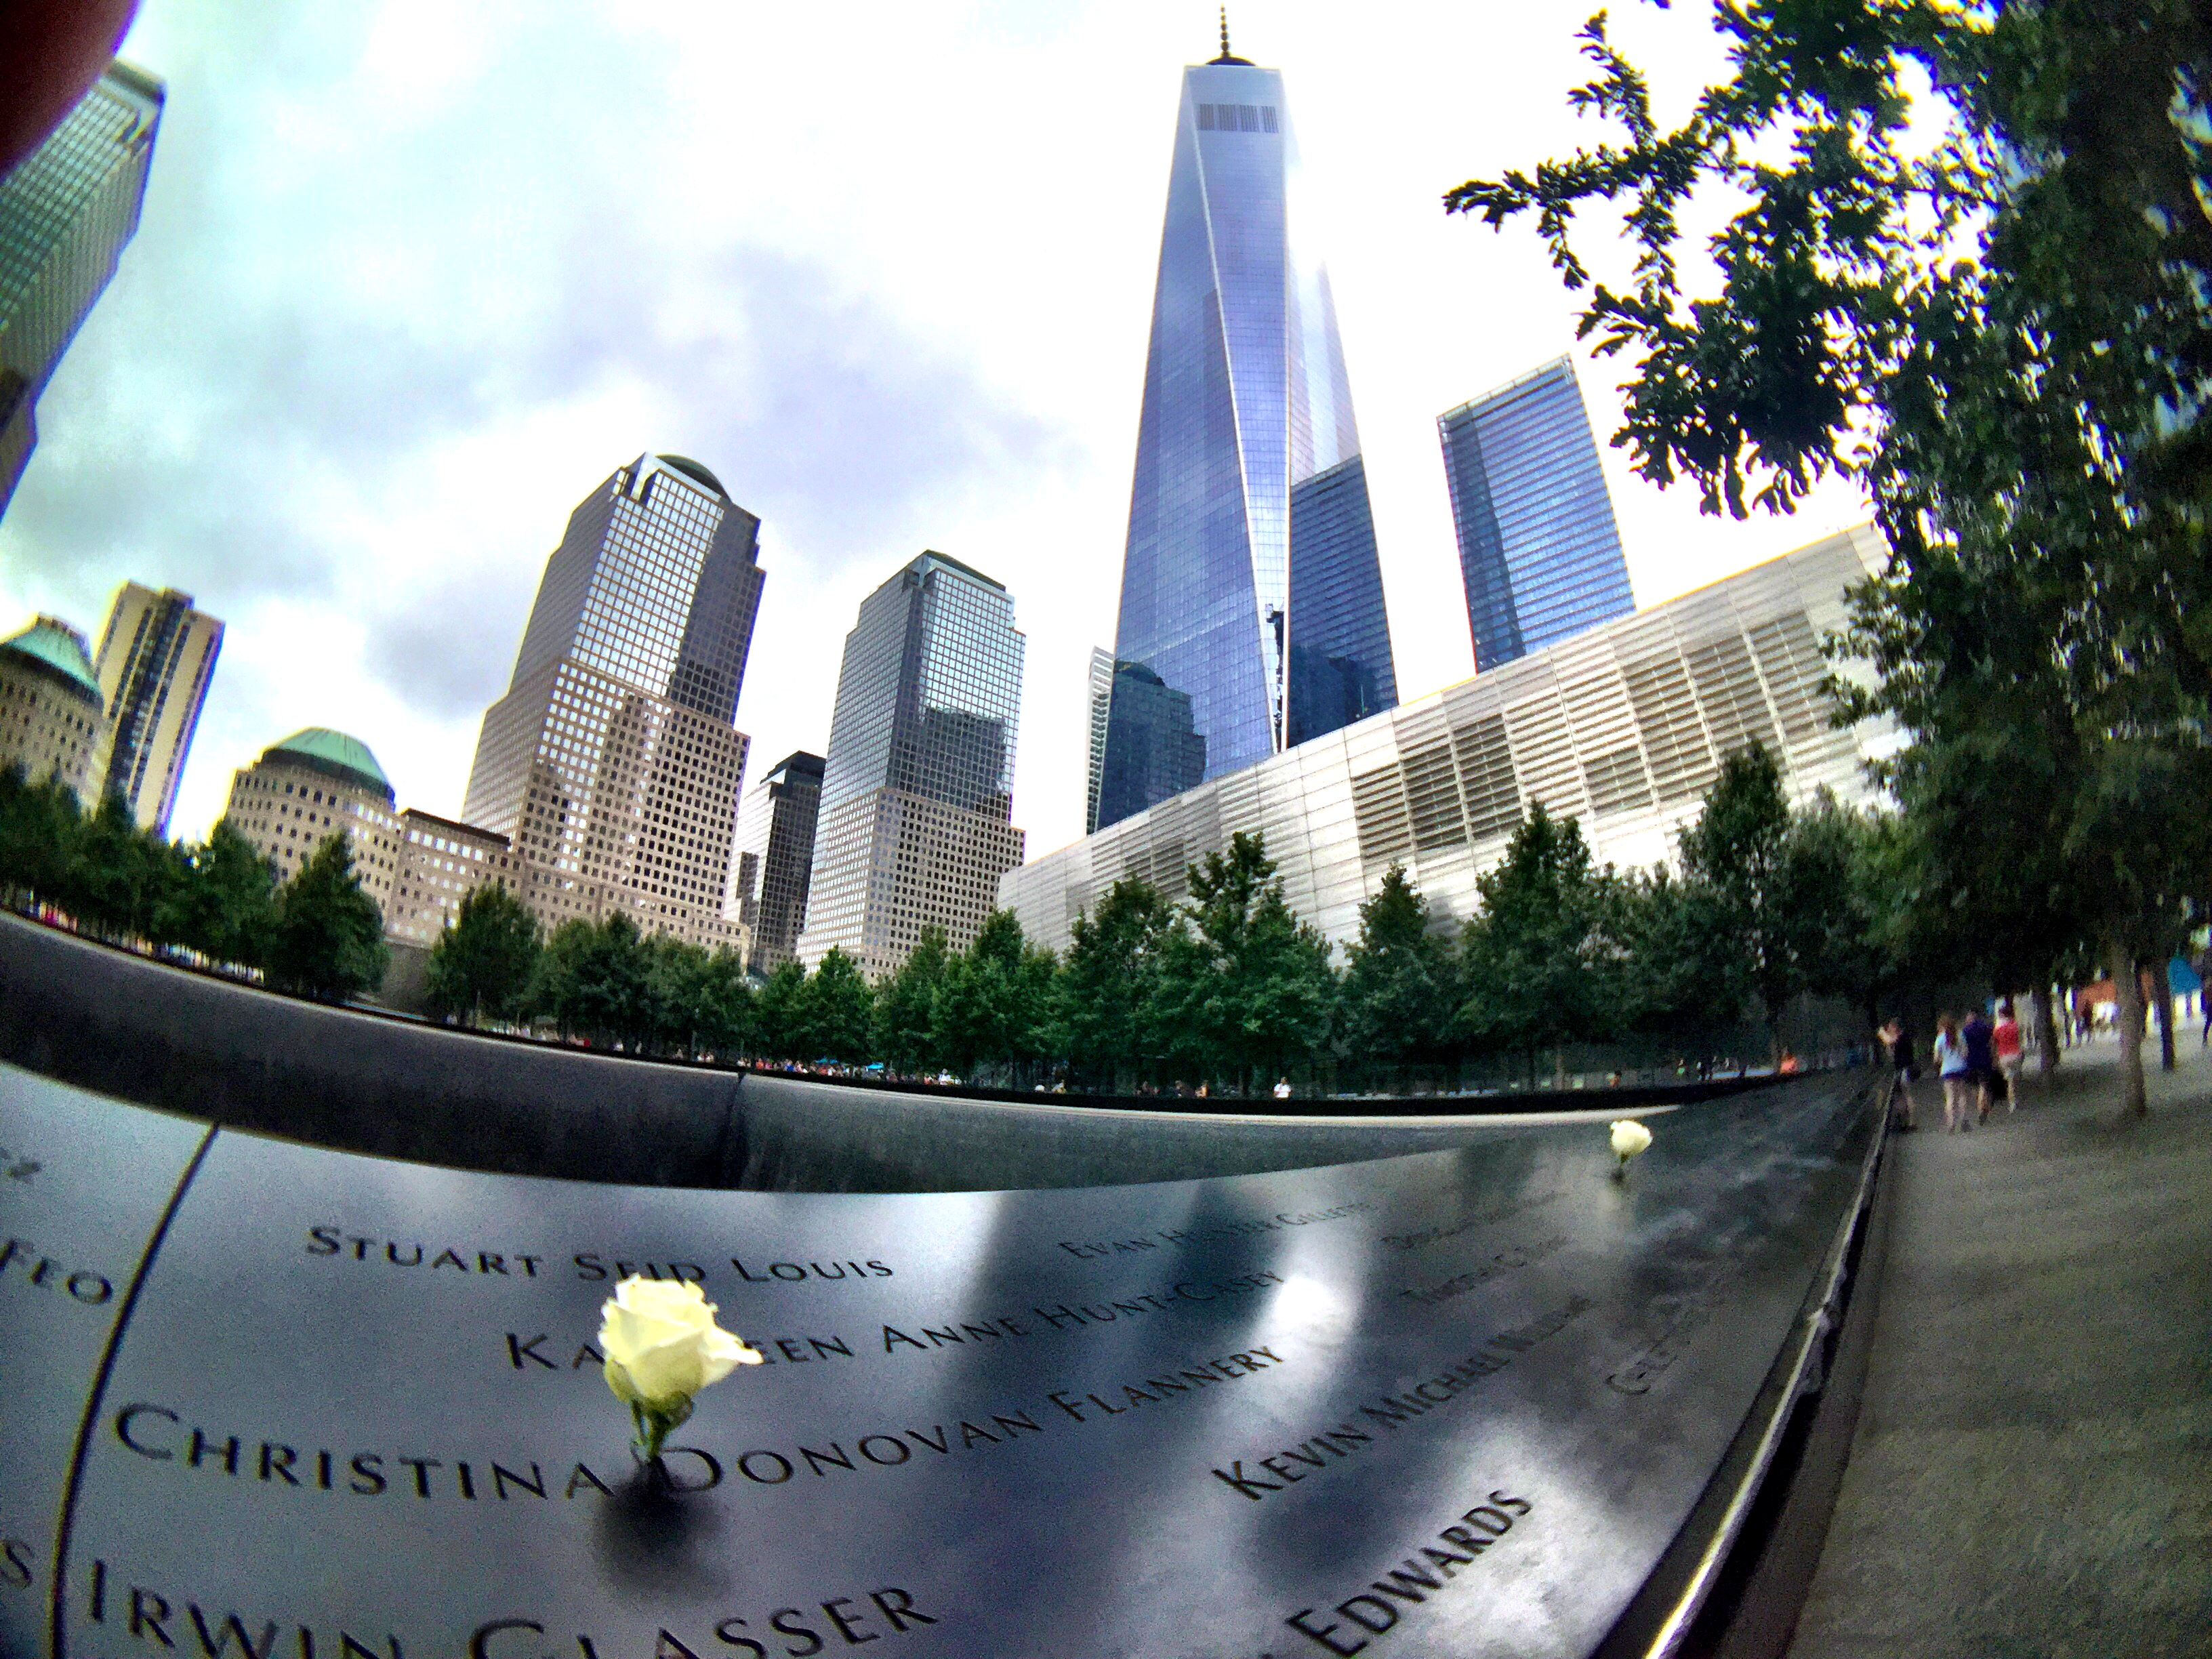 The 9/11 Memorial to victims of the Twin Towers  attack is only a short distance from the new One World Trade Center building and other new projects in Lower Manhattan. JIM BYERS PHOTO (with help from a Hitcase wide angle lens on my iPhone)